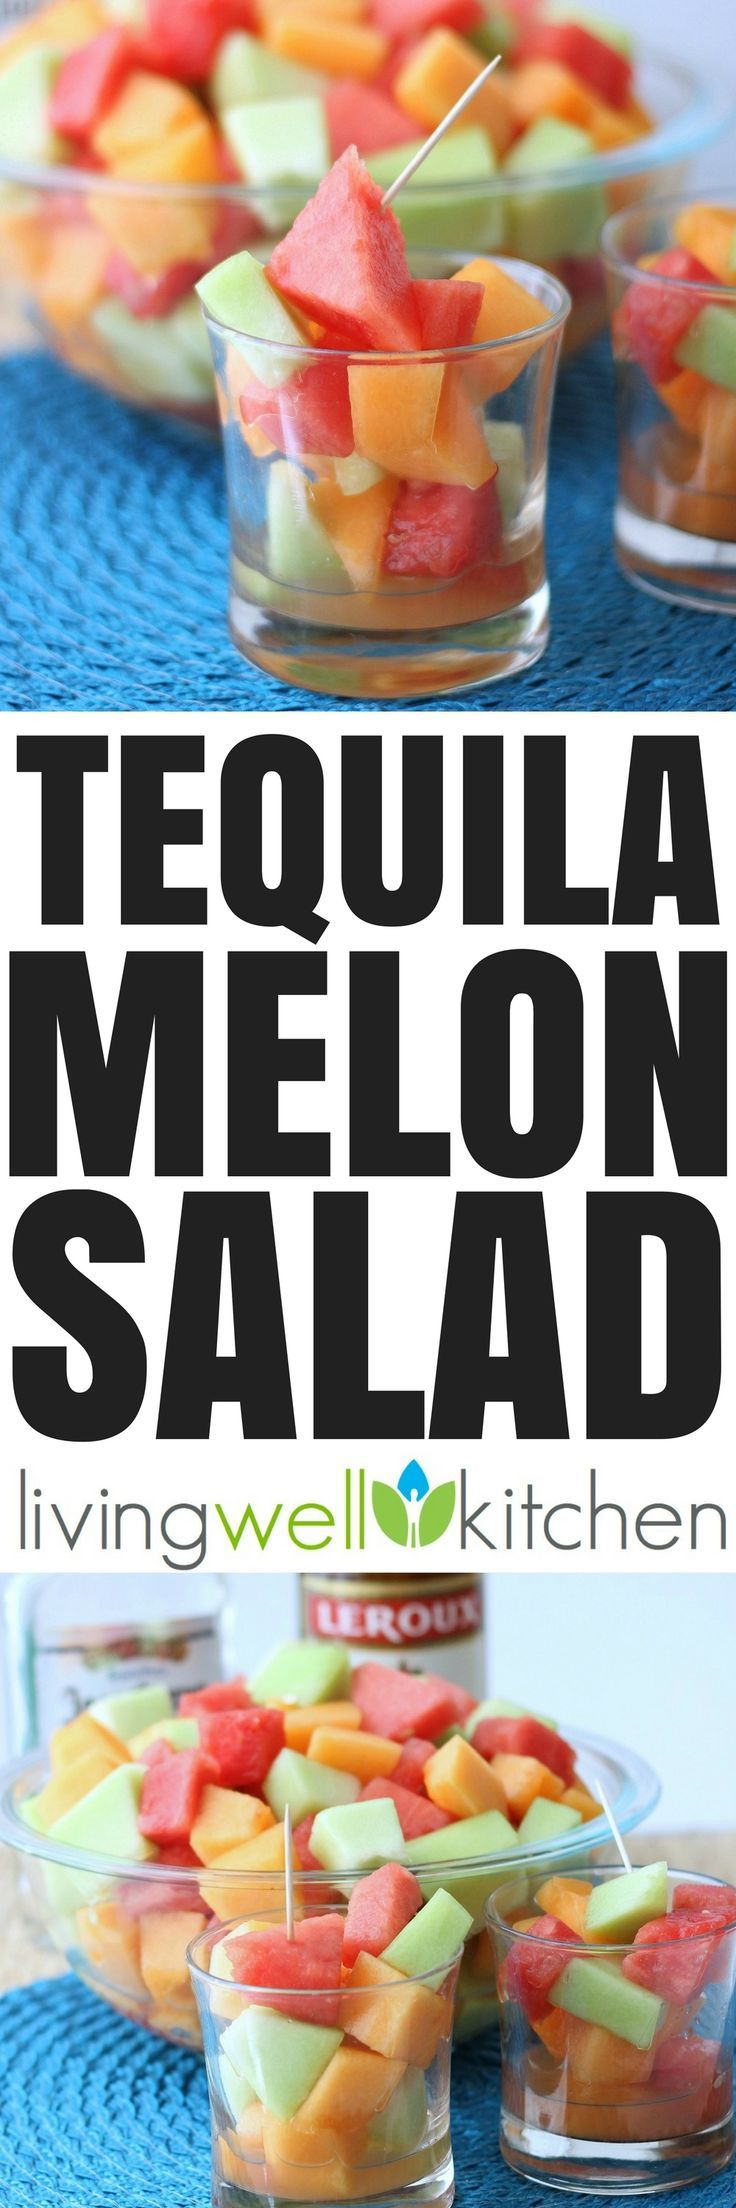 """Tequila intoxicated melon is a glorious way to celebrate Cinco de Mayo or just to enjoy on a warm day. This """"salad"""" is quite refreshing. Tequila Melon Salad recipe from @memeinge is great for parties and is a fun adult only treat. Gluten free, dairy free"""